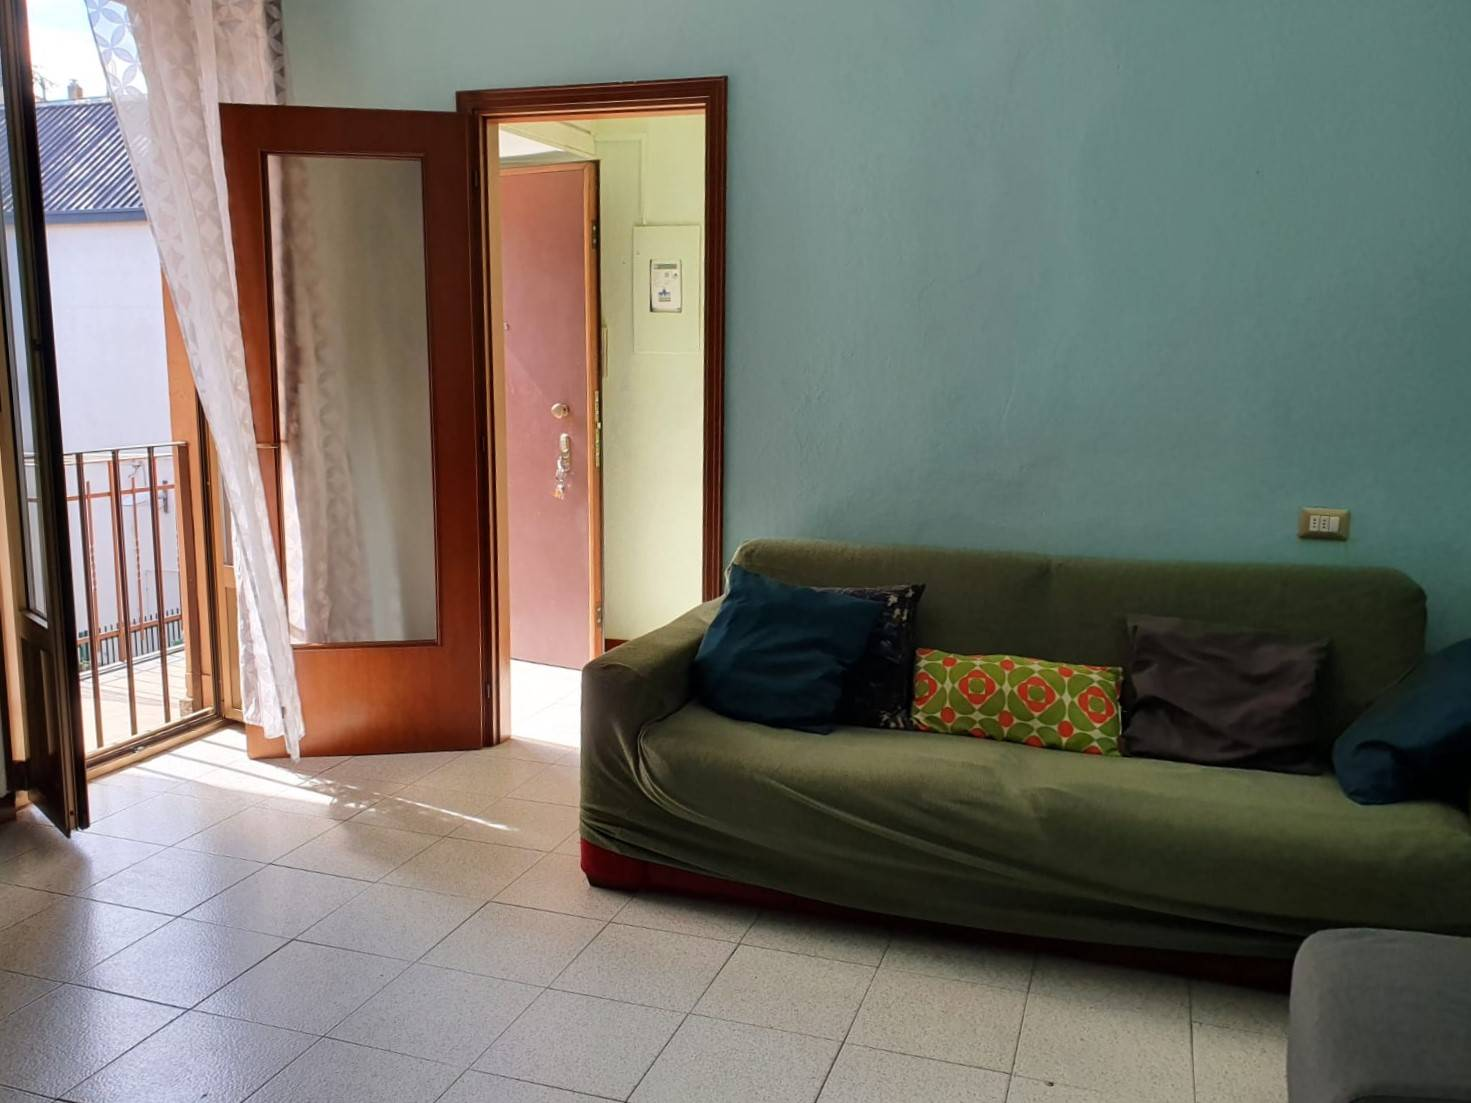 SESTO SAN GIOVANNI, Apartment for rent, Excellent Condition, Heating Individual heating system, Energetic class: G, Epi: 175 kwh/m2 year, placed at